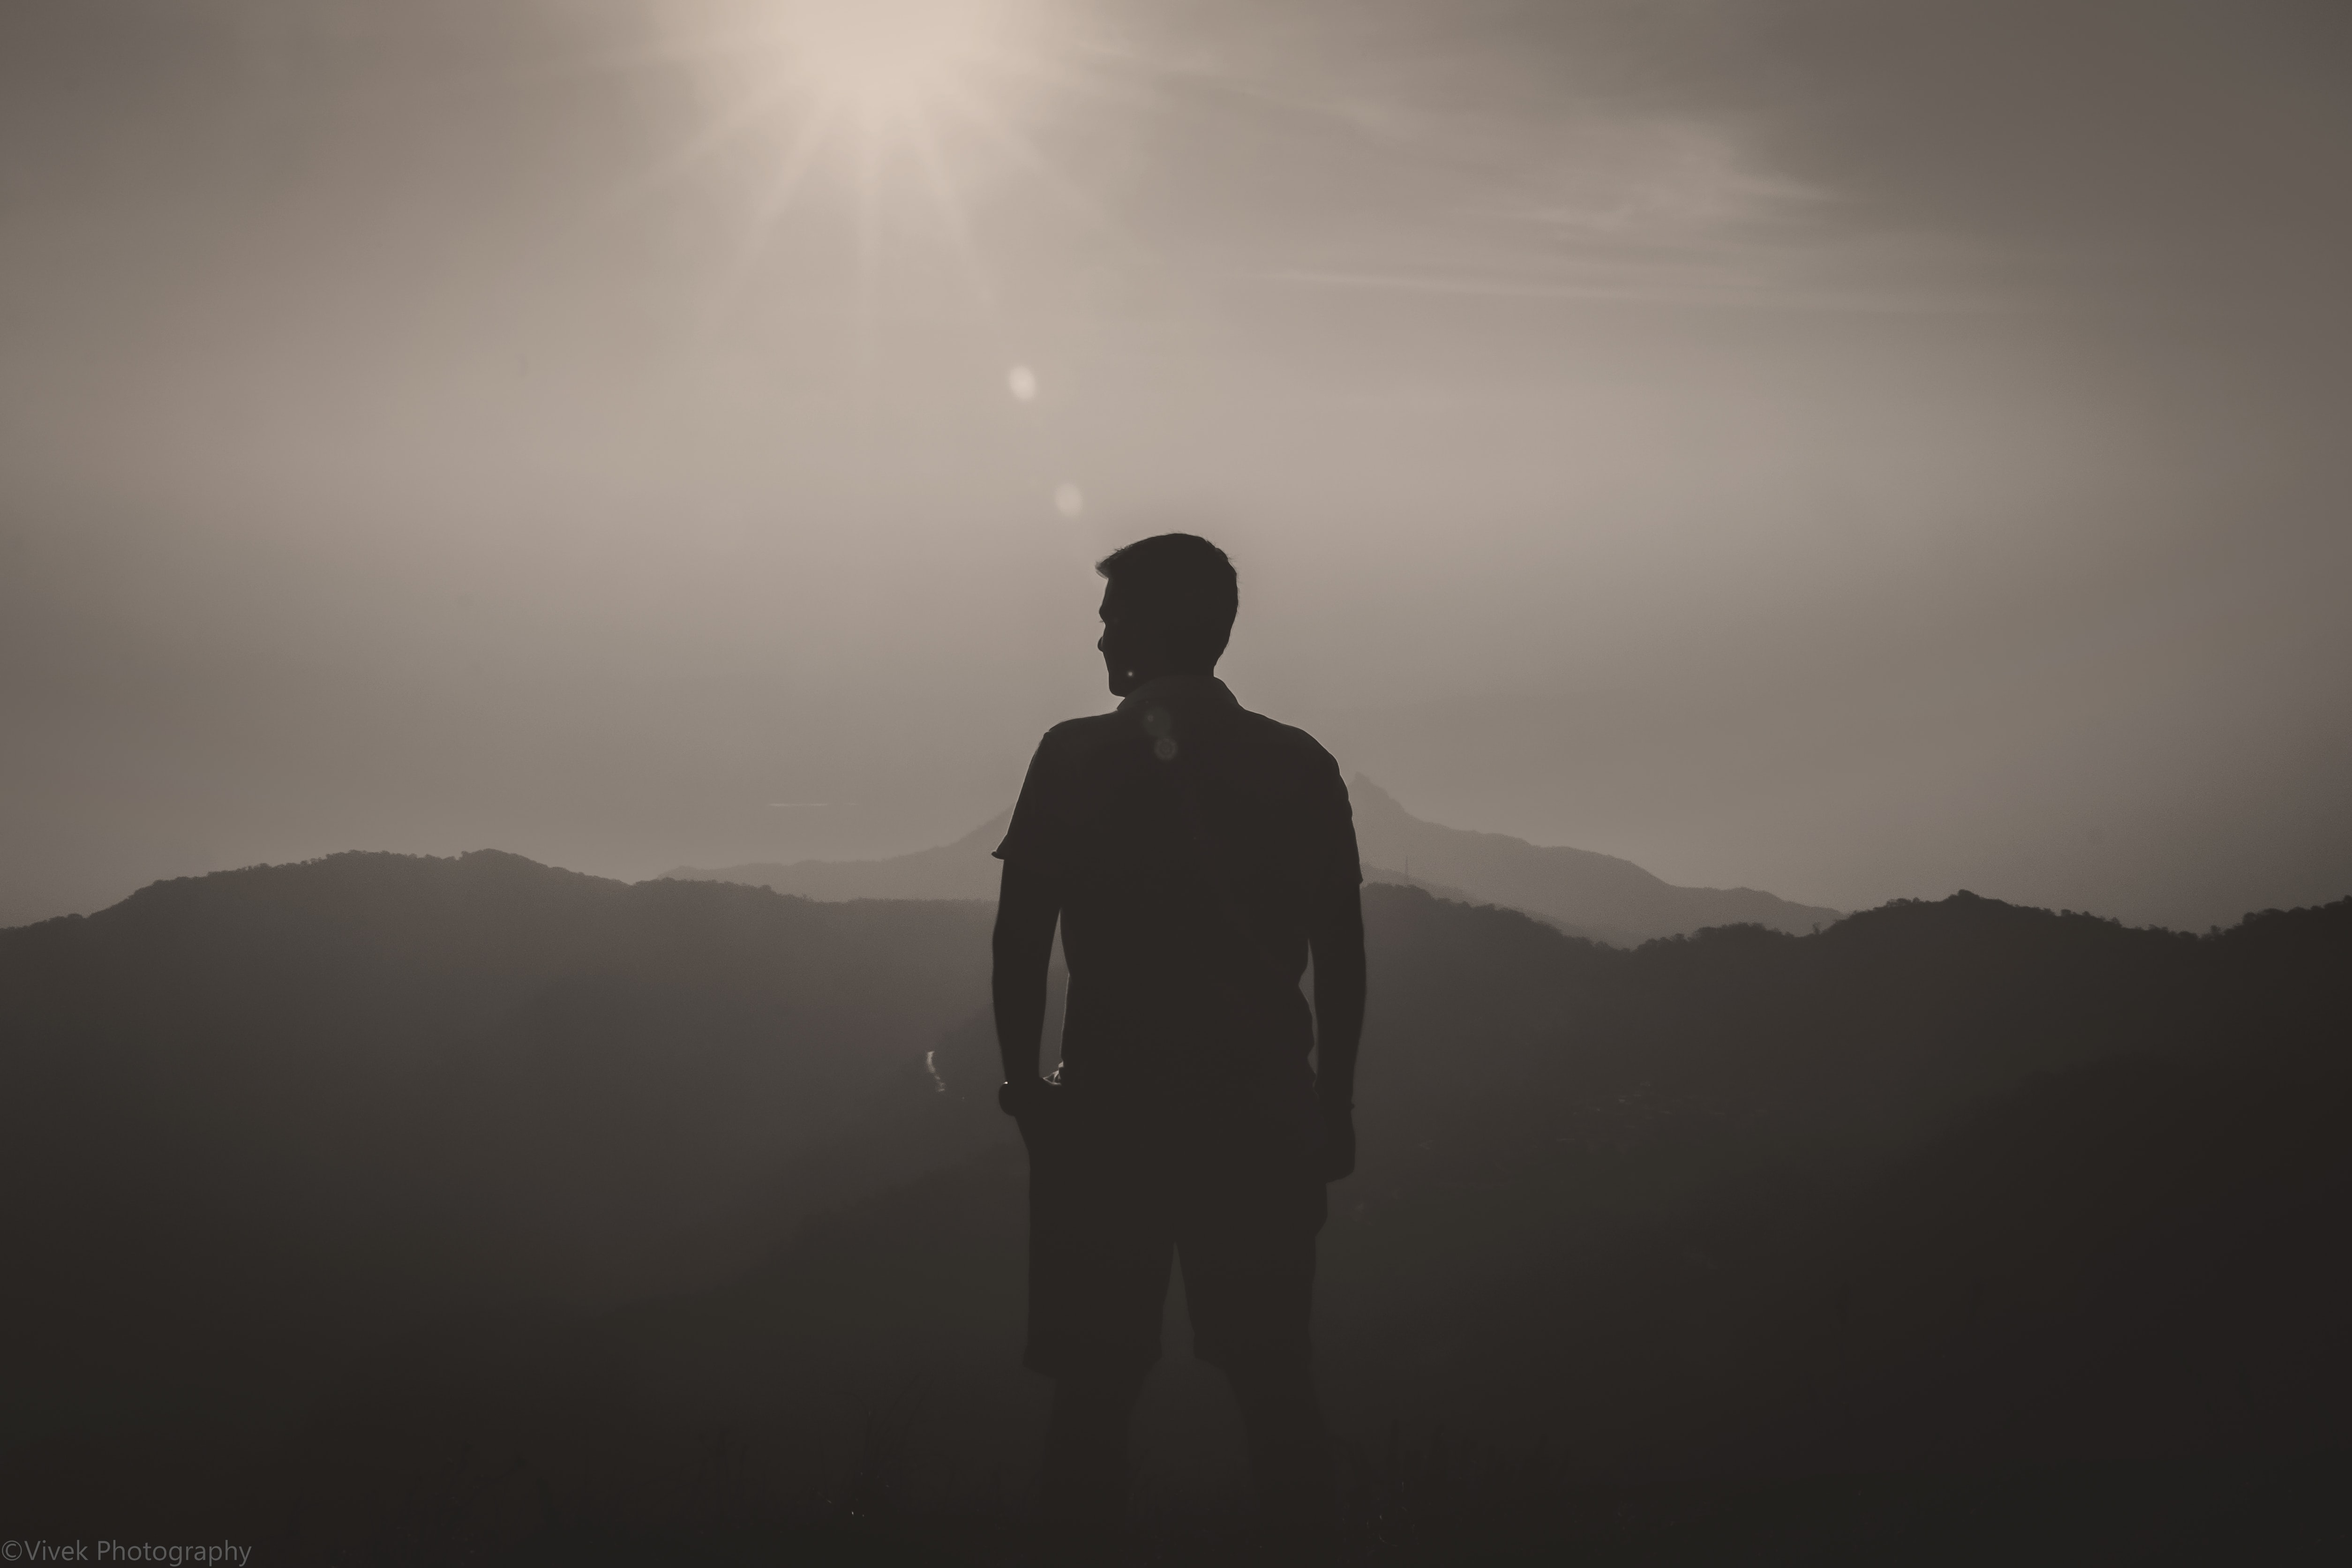 silhouette of man looking towards left